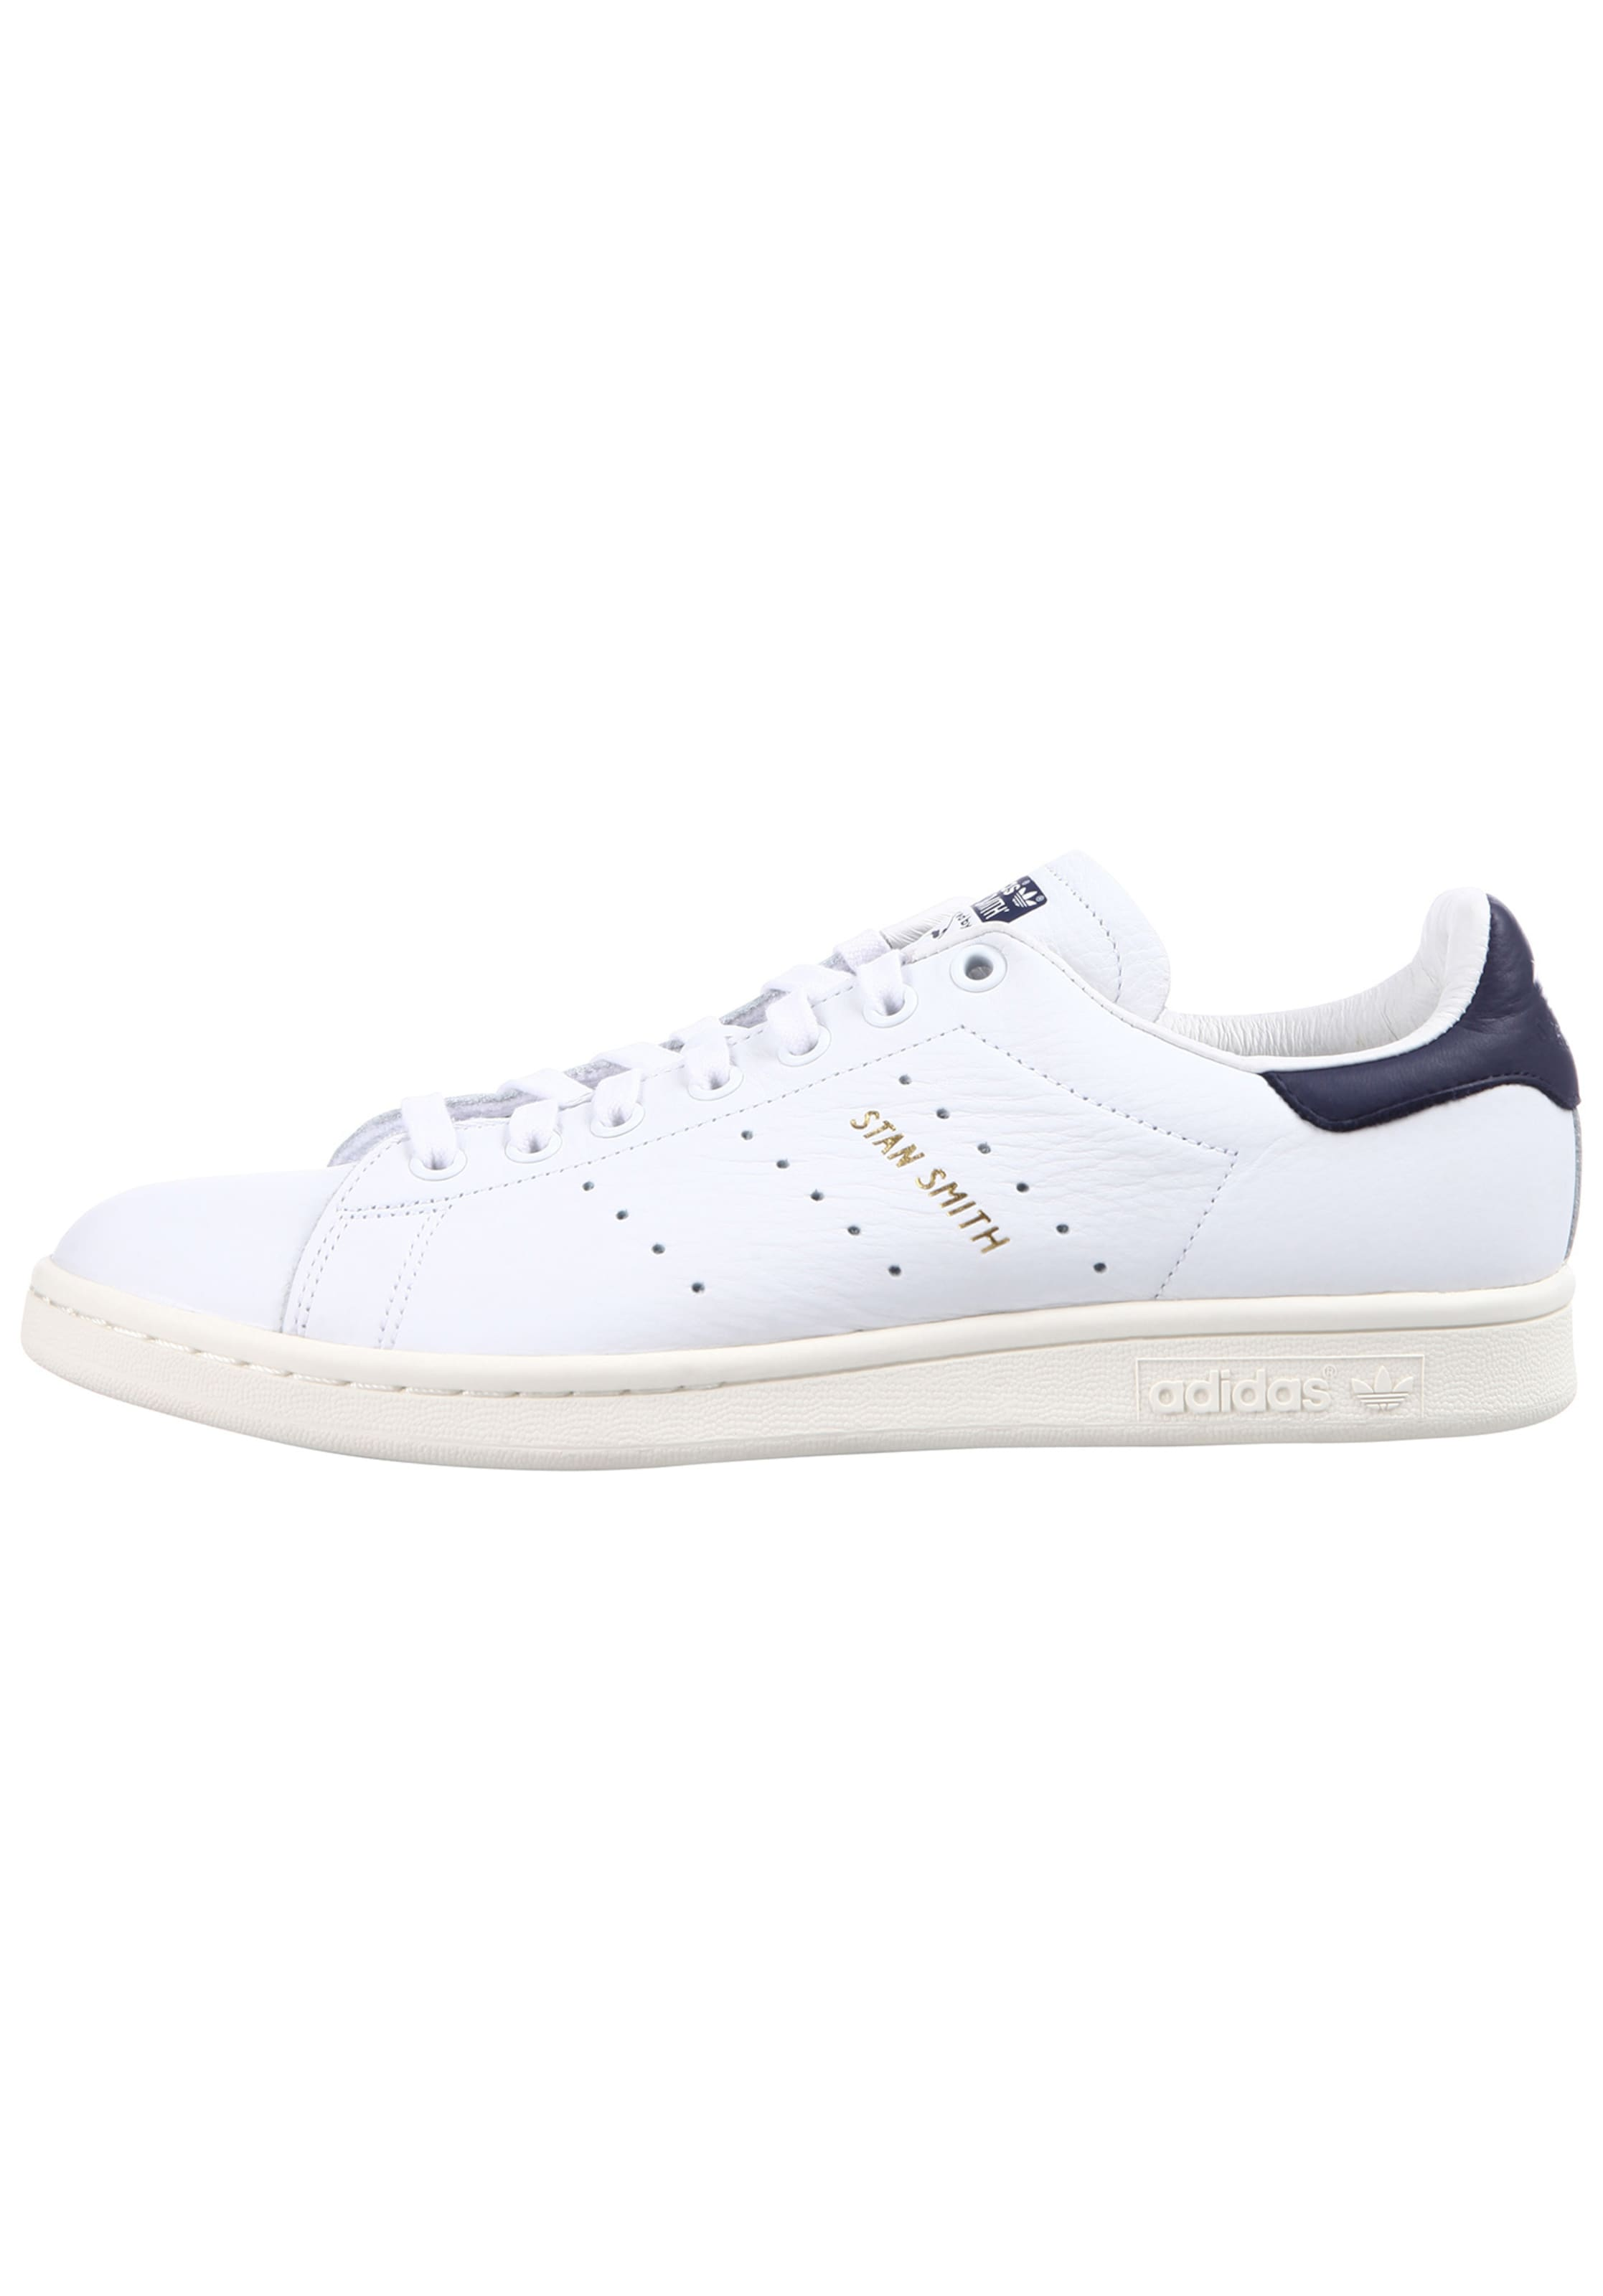 ADIDAS ORIGINALS | Stan Smith Sneaker